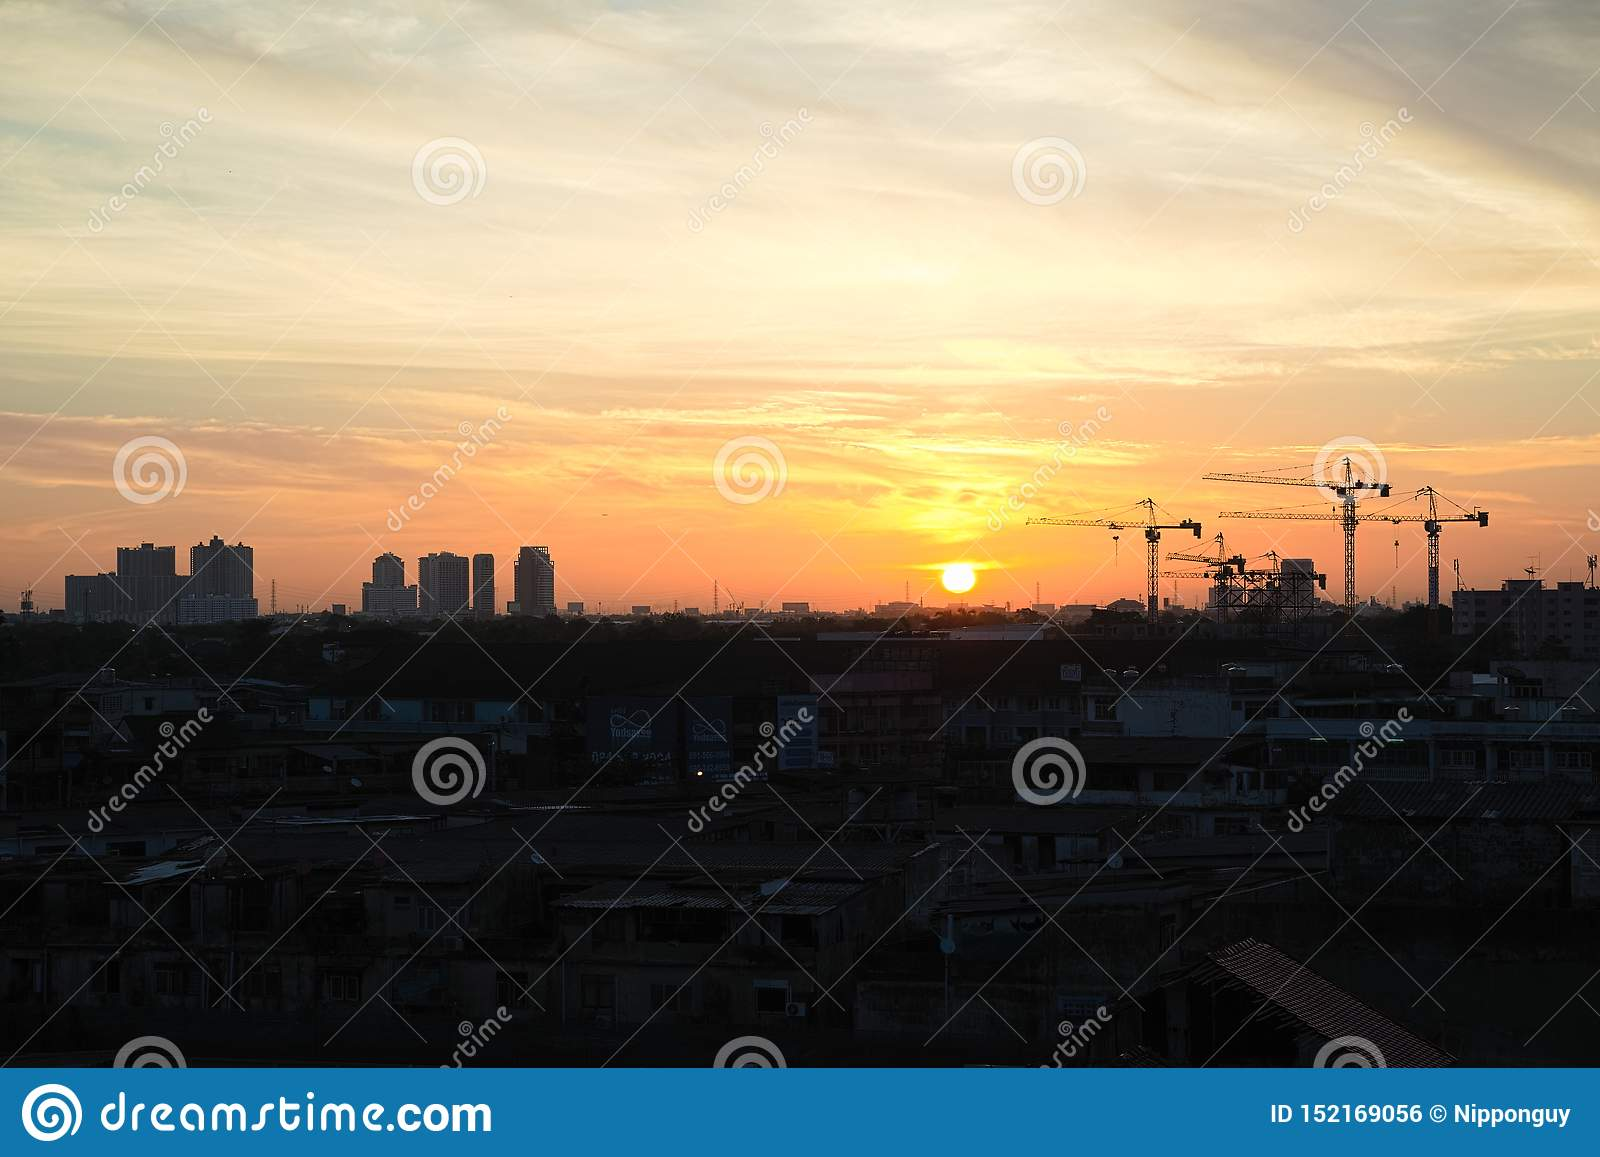 The silhouette of crane in Bangkok, Thailand